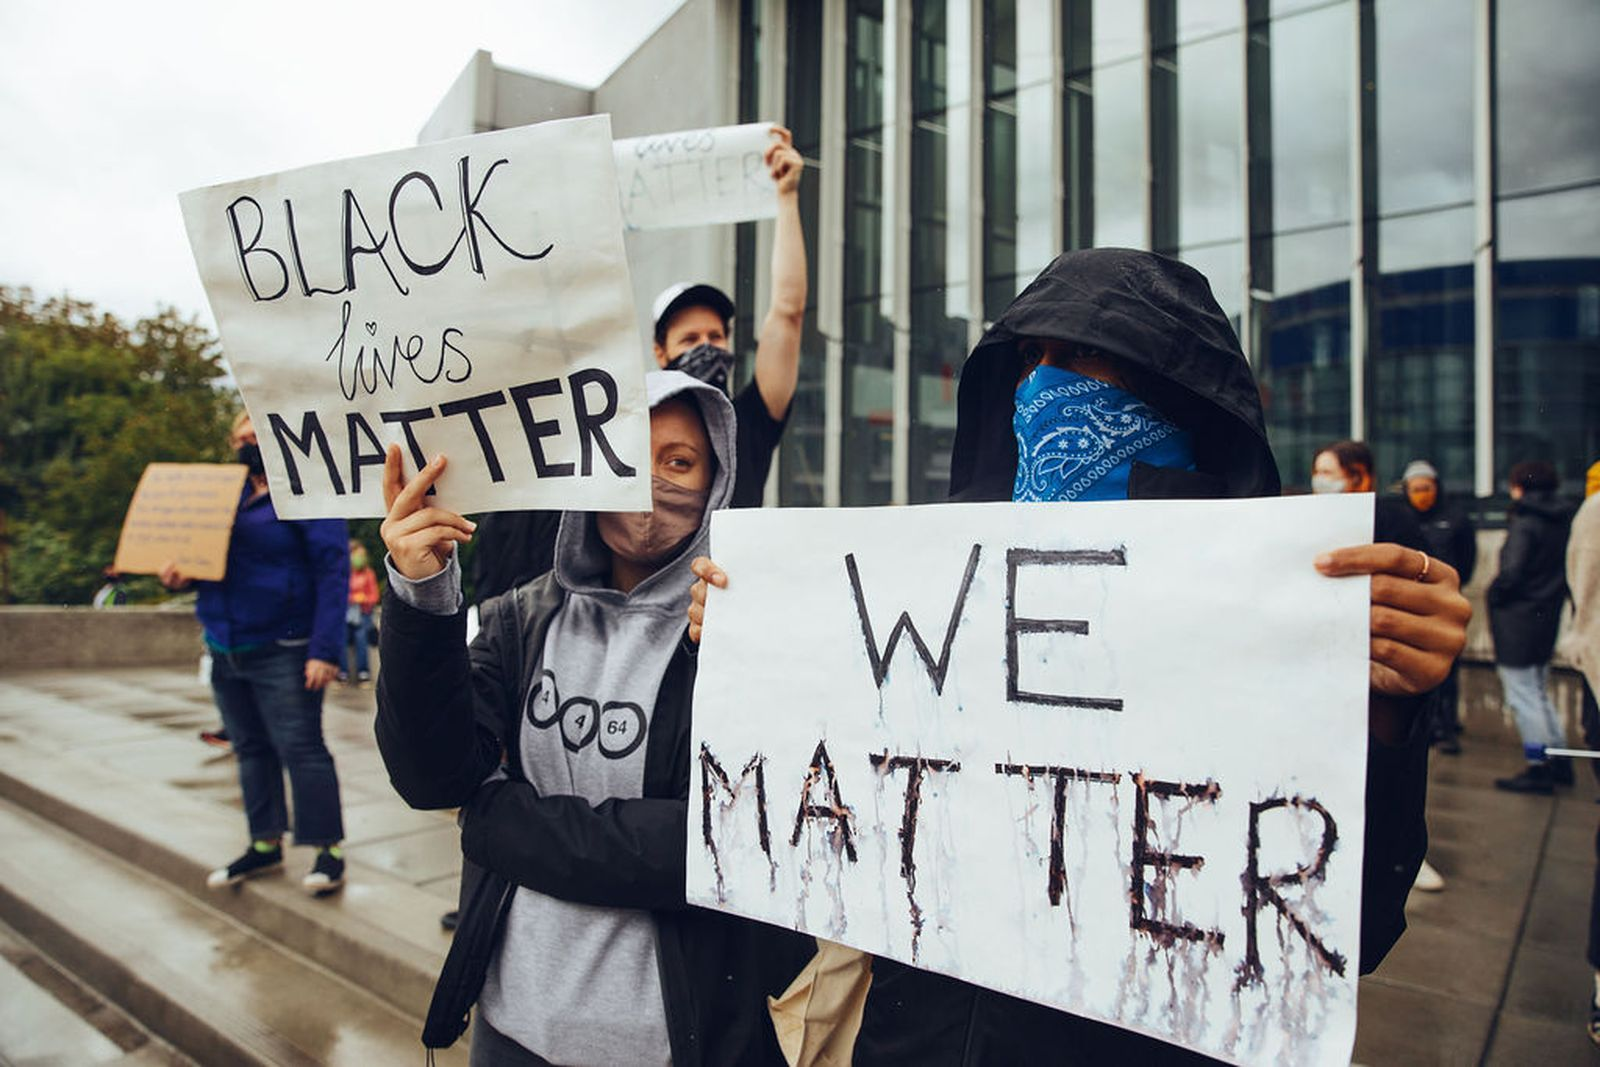 Adidas Employees in Protest for Black Lives Matter